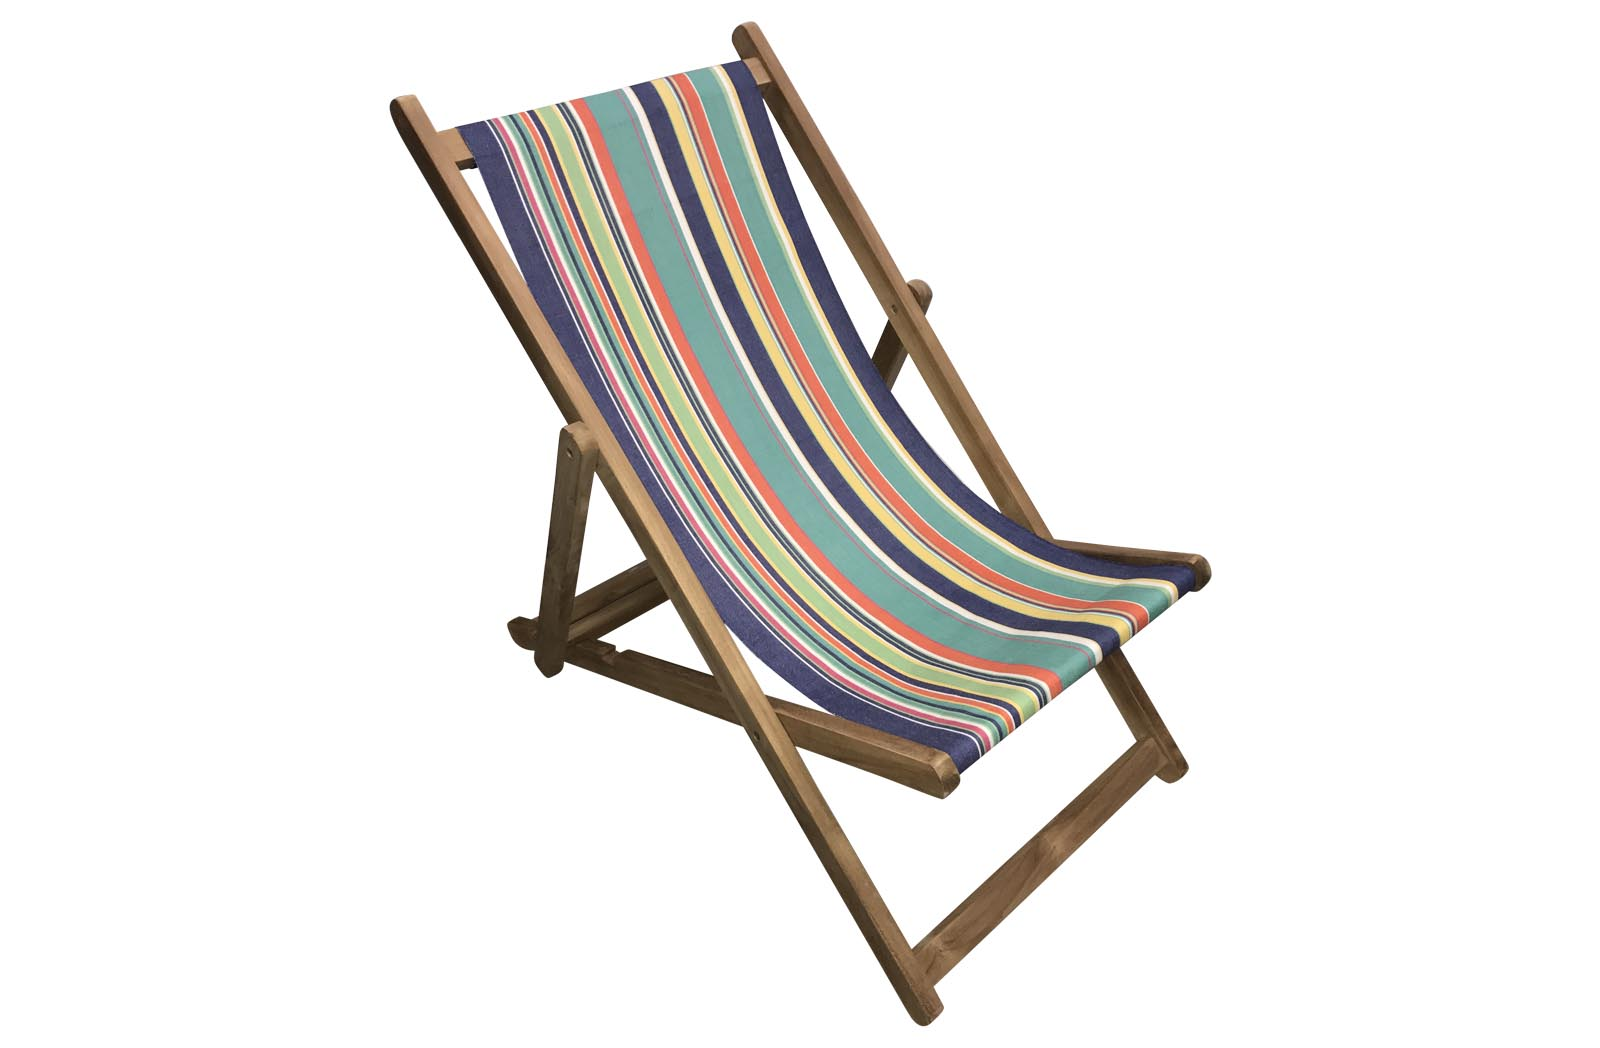 Royal Blue Stripe Deckchairs | Folding Wooden Deck Chairs Yachting Stripes